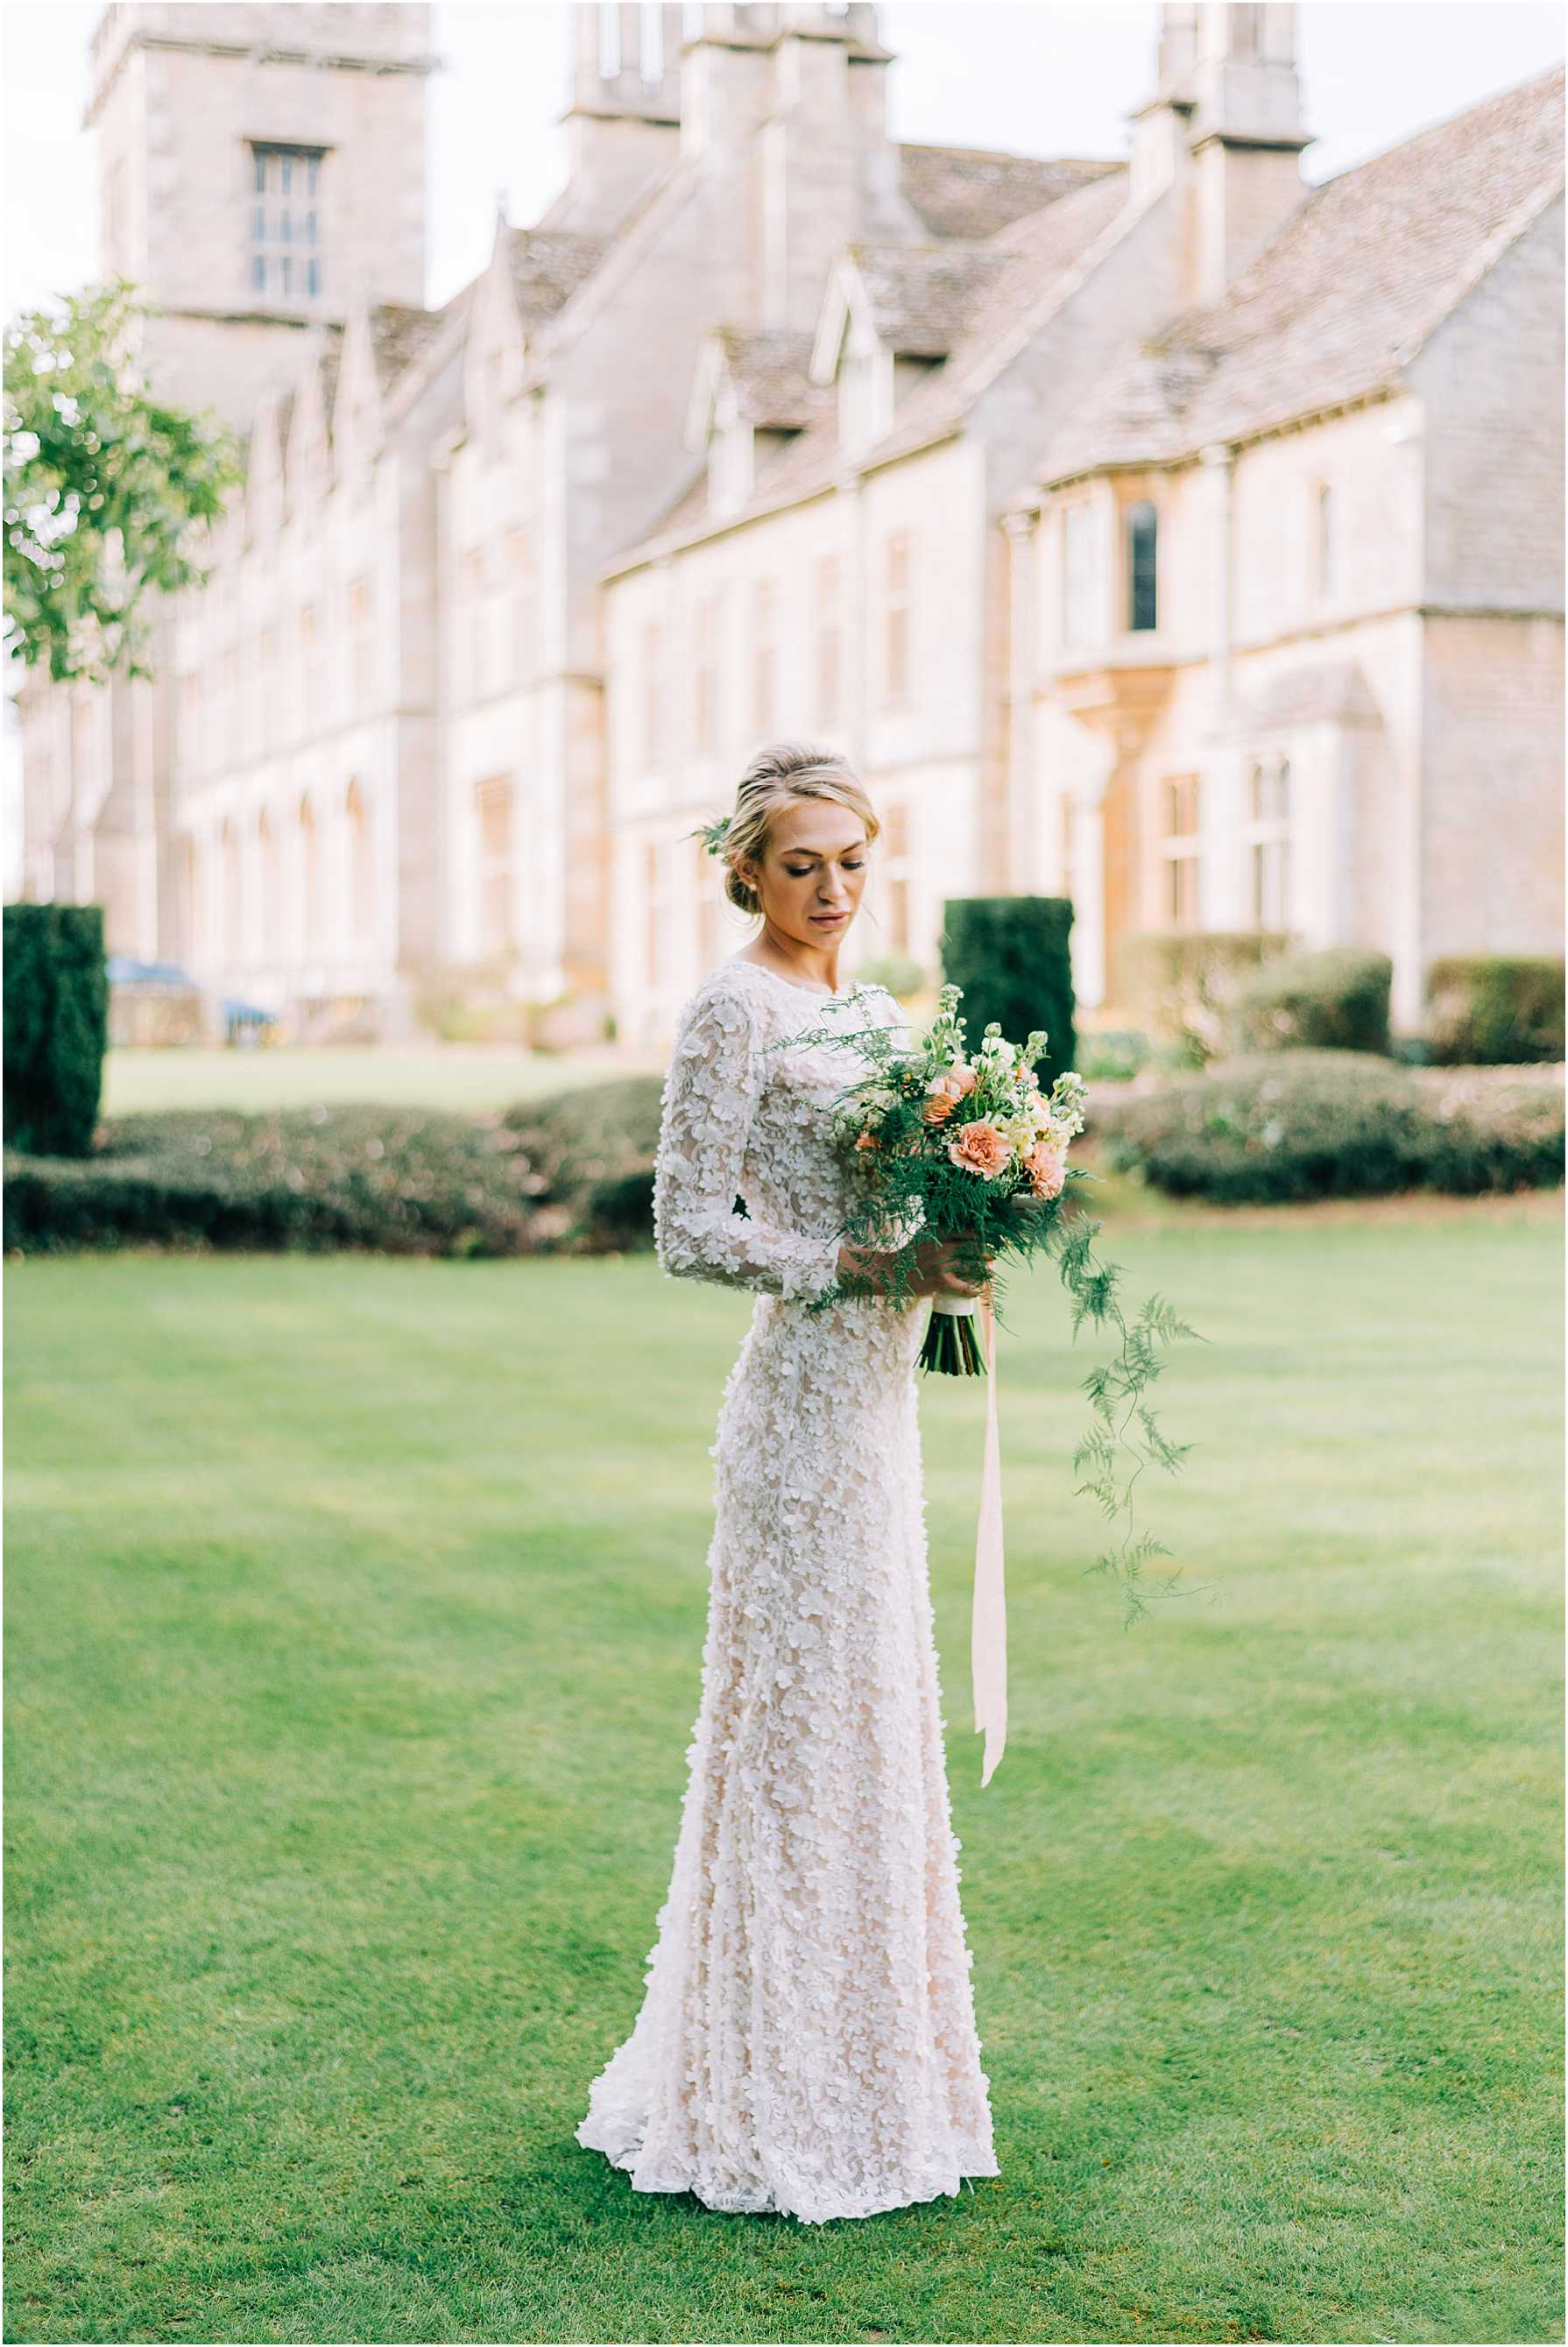 bridal portraits at royal agricultural university in cirencester